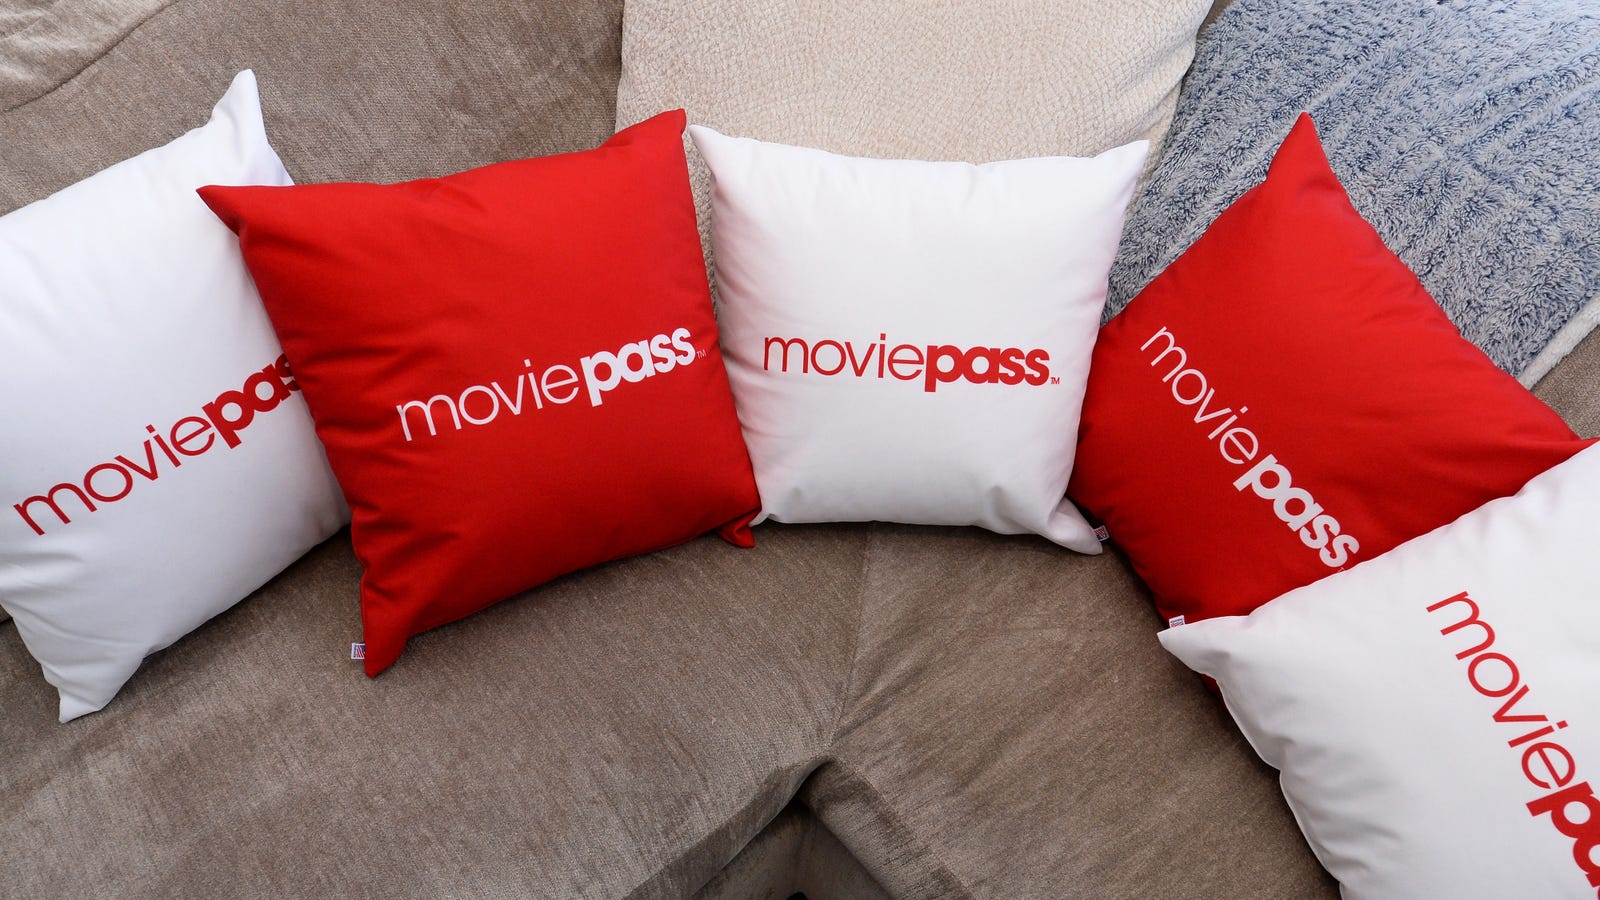 MoviePass says it will go dark for 'several weeks' to update its app with some questioning the company's motives during a busy summer movie season